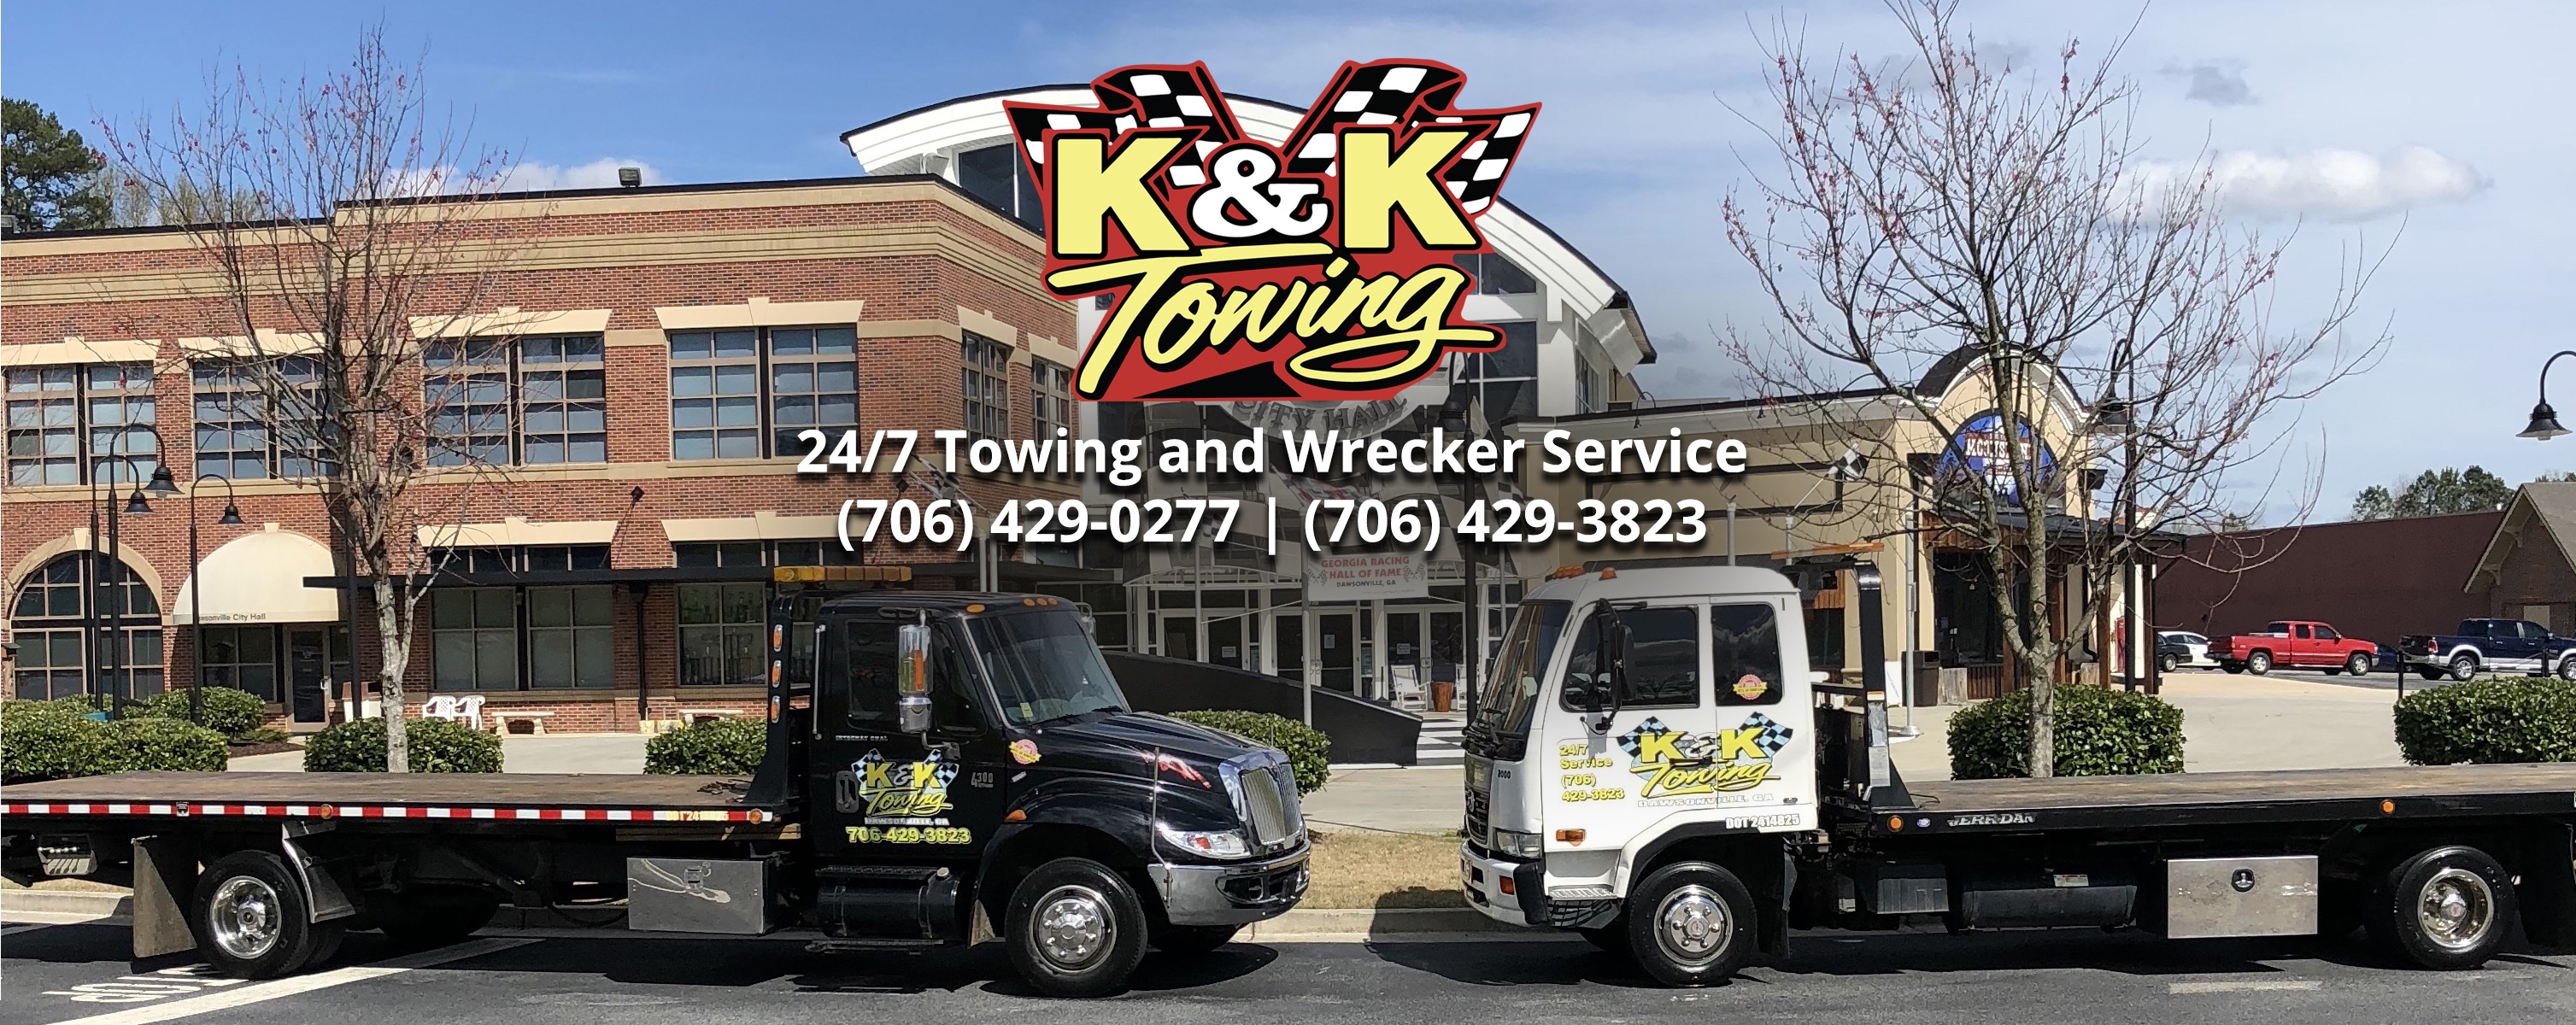 Dawsonville Towing & Wrecker Services provided by K&K Towing and Wrecker.